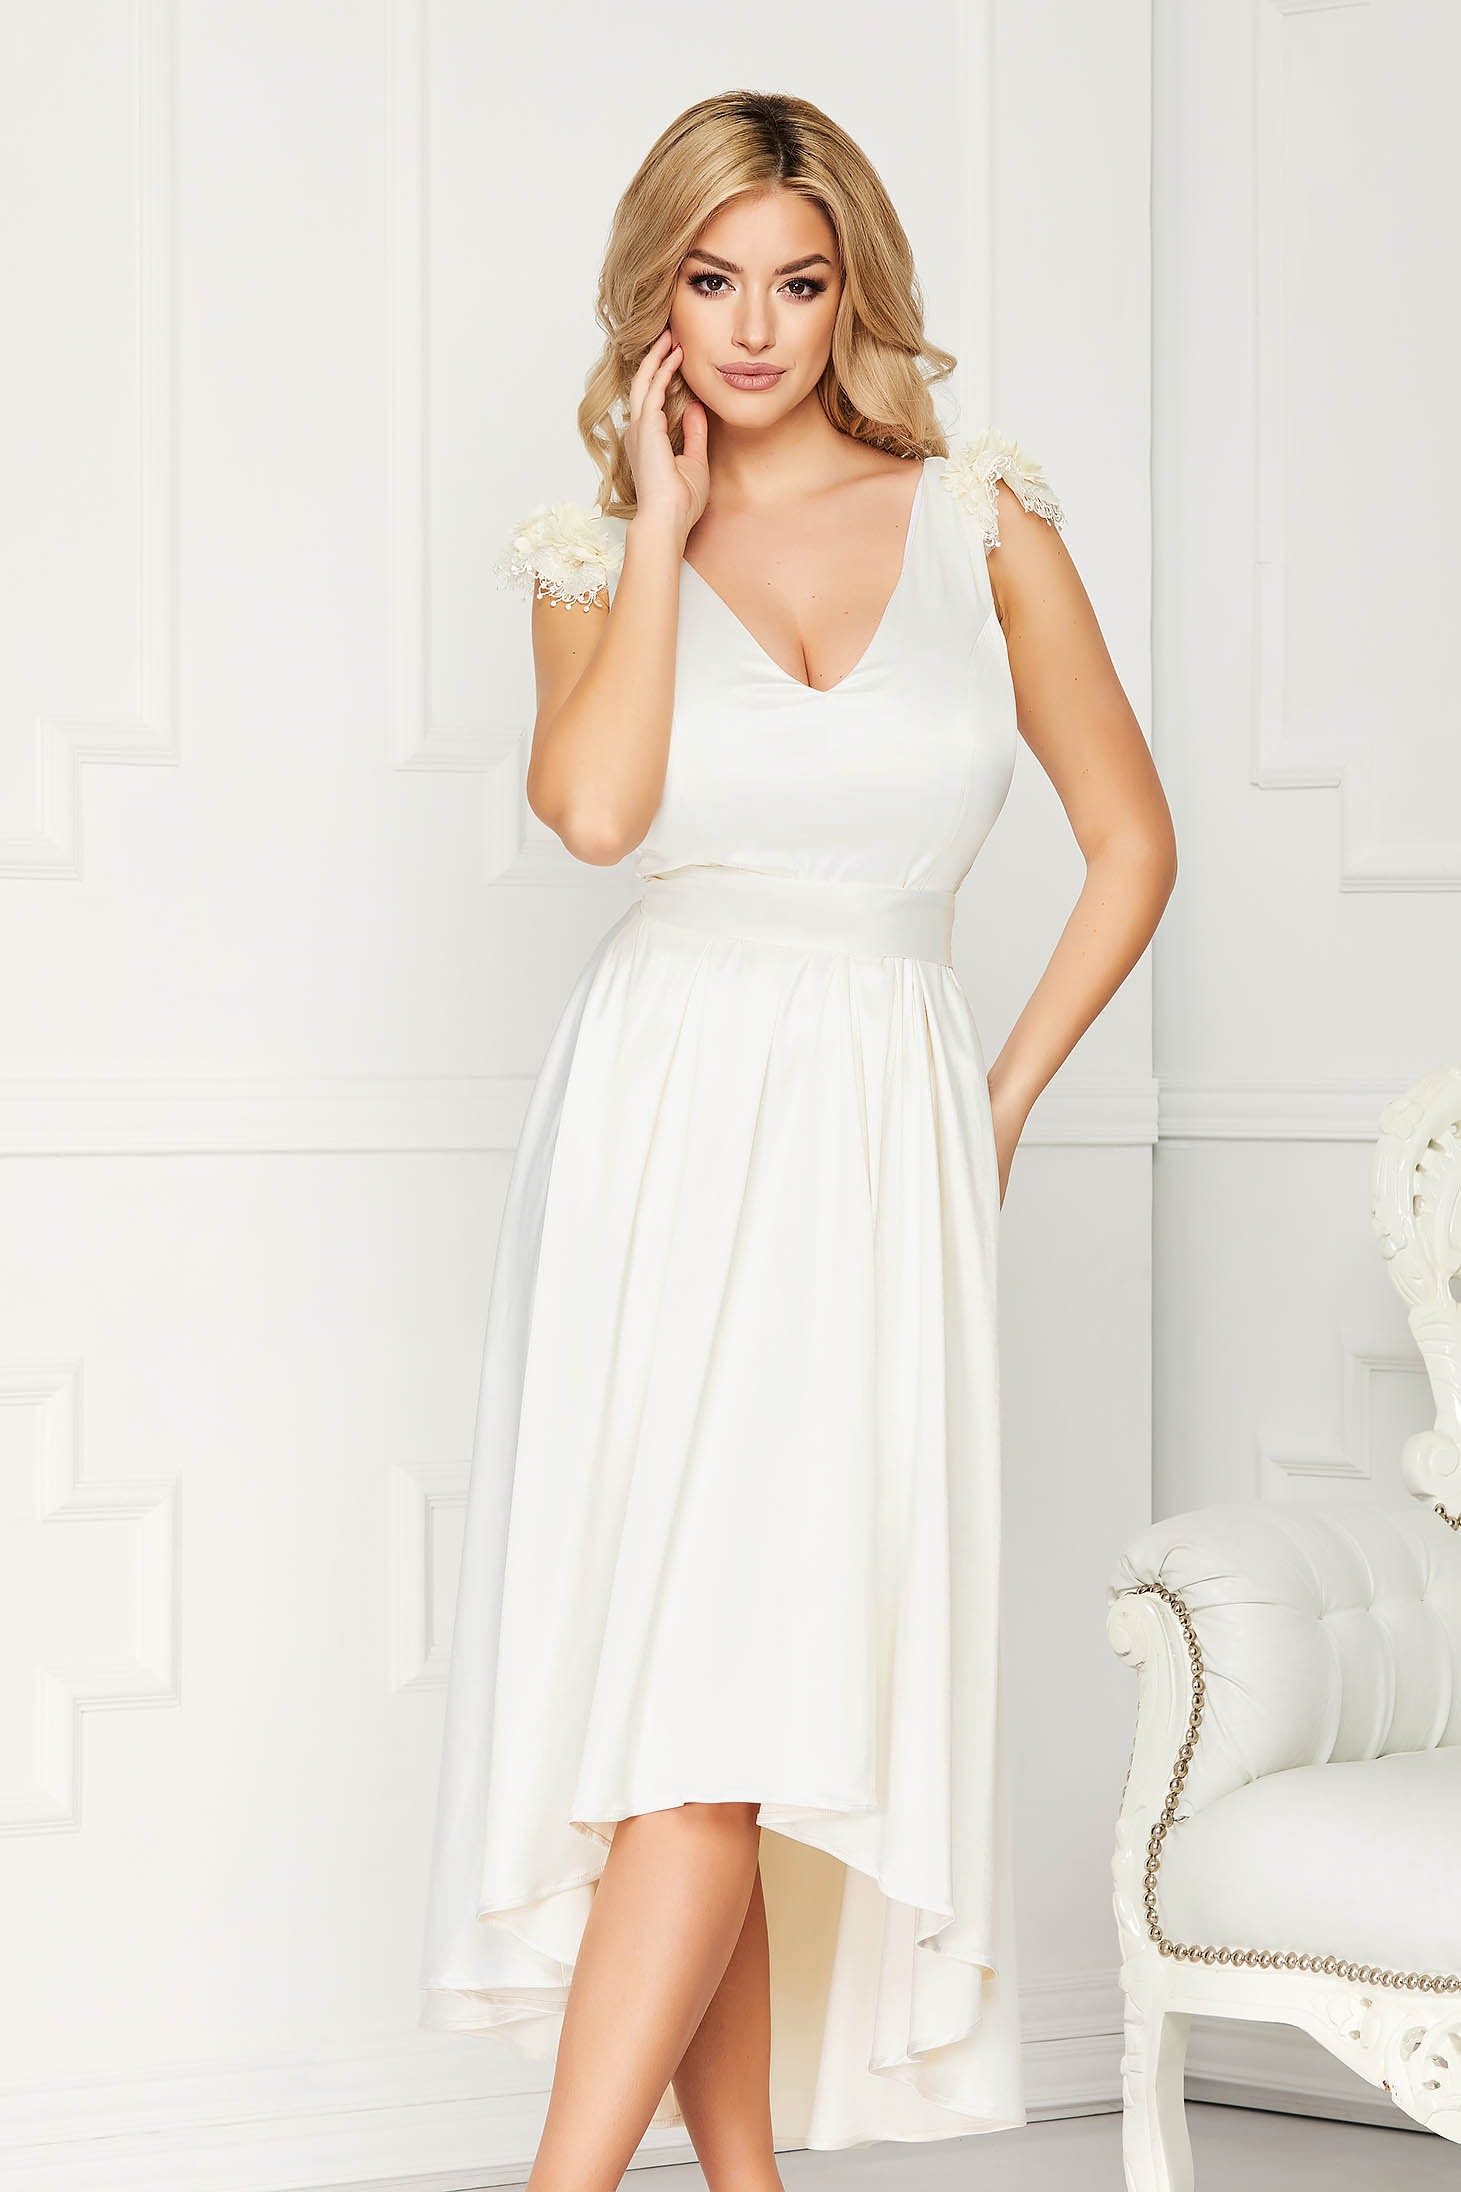 Dress StarShinerS cream asymmetrical occasional cloche from satin sleeveless with lace details